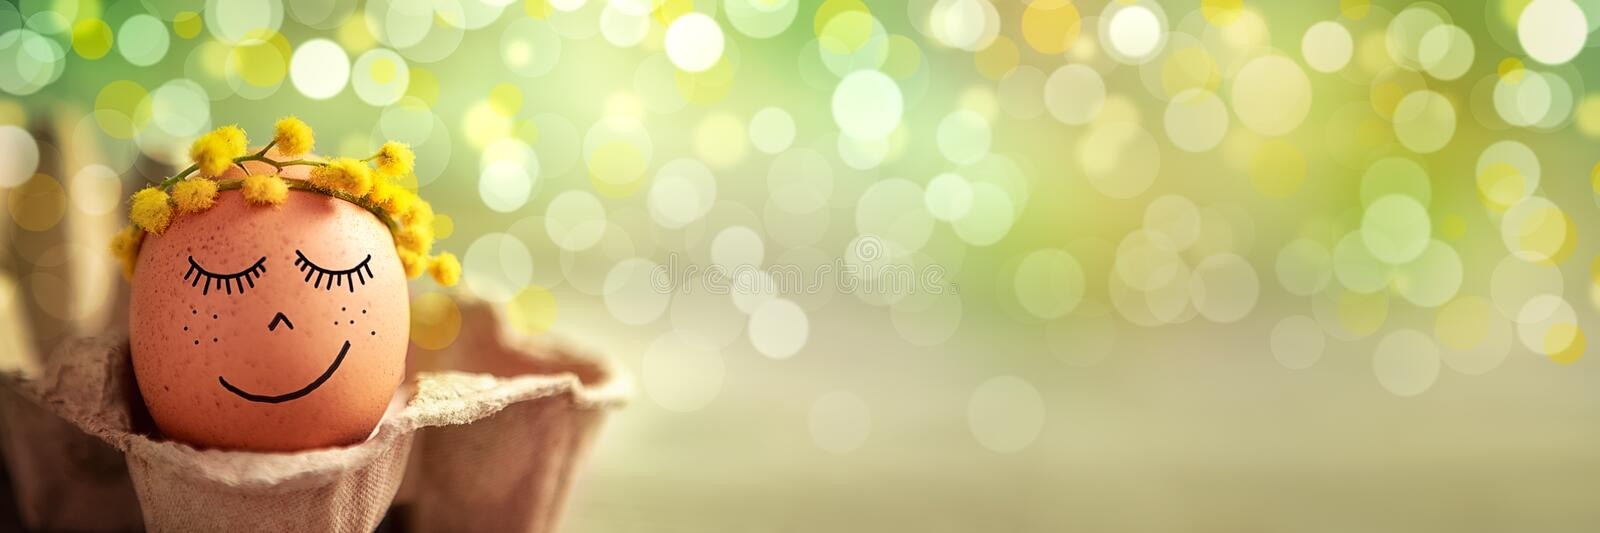 Calm and spiritual Easter holiday. Easter egg with calm and spiritual face expression  in springtime bokeh background stock images